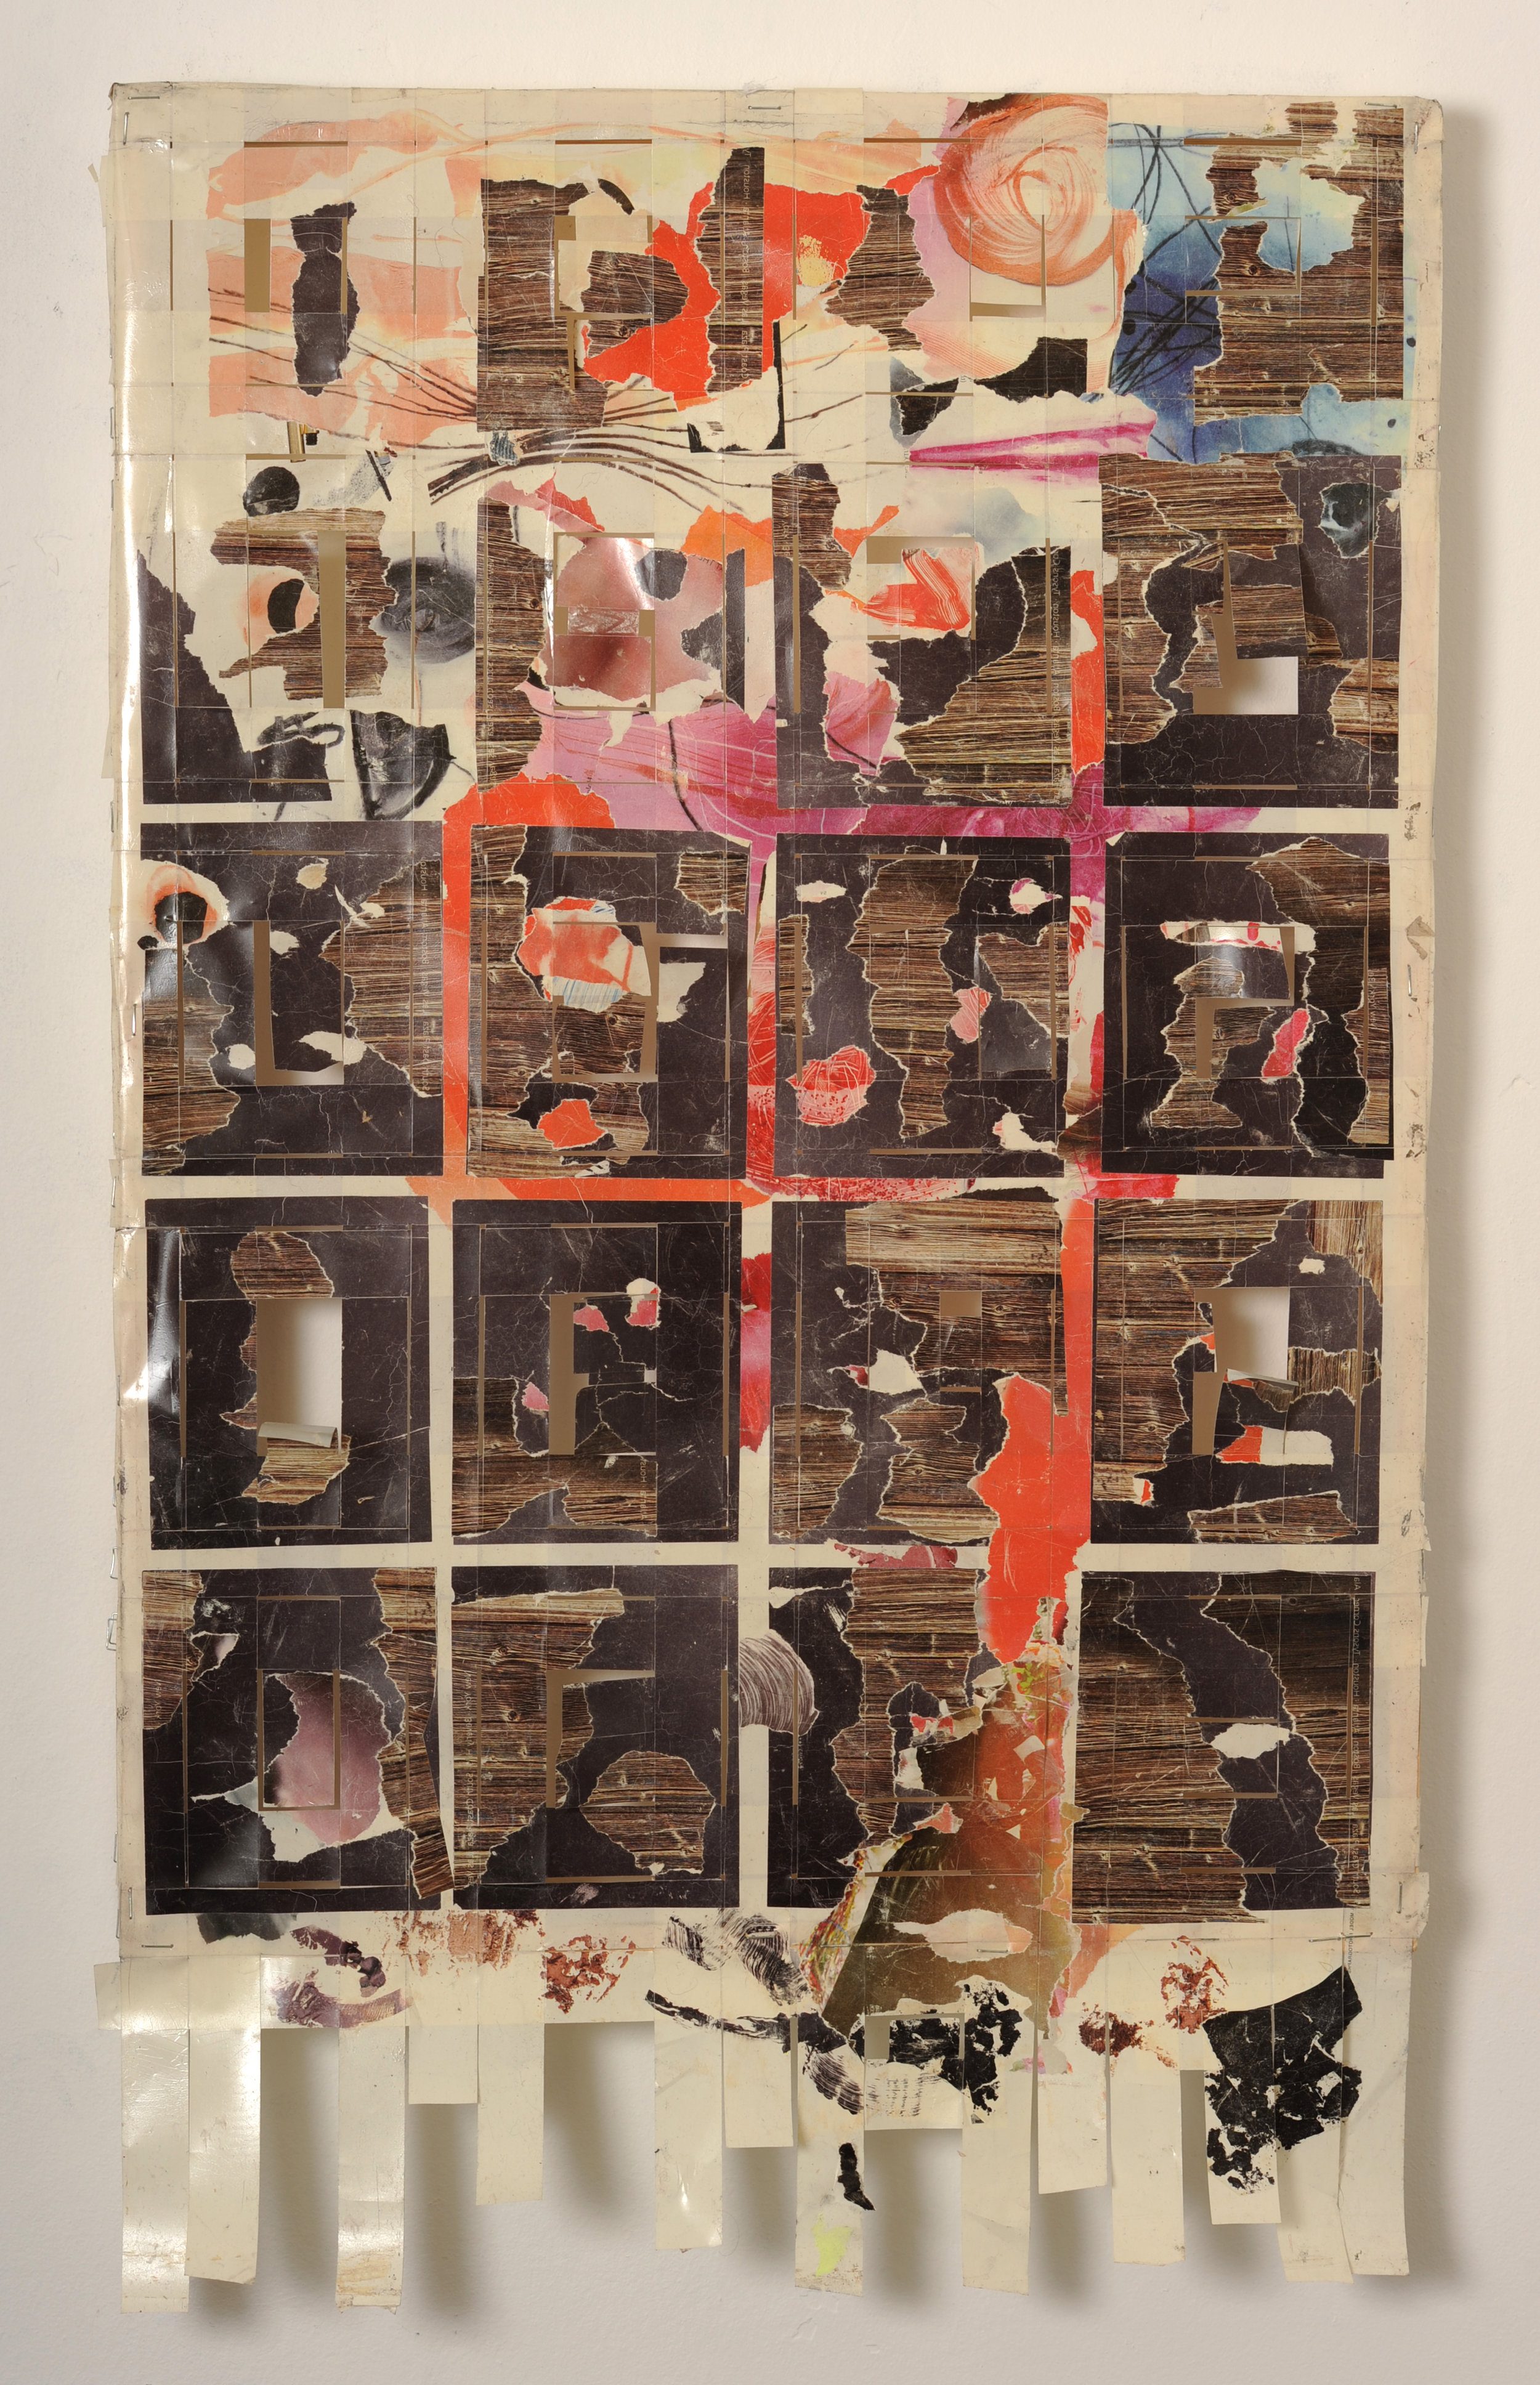 Corpus Markus , 2010 Torn and cut magazine arrangement transferred onto tape, wood, staples, spray paint 31 x 19 inches